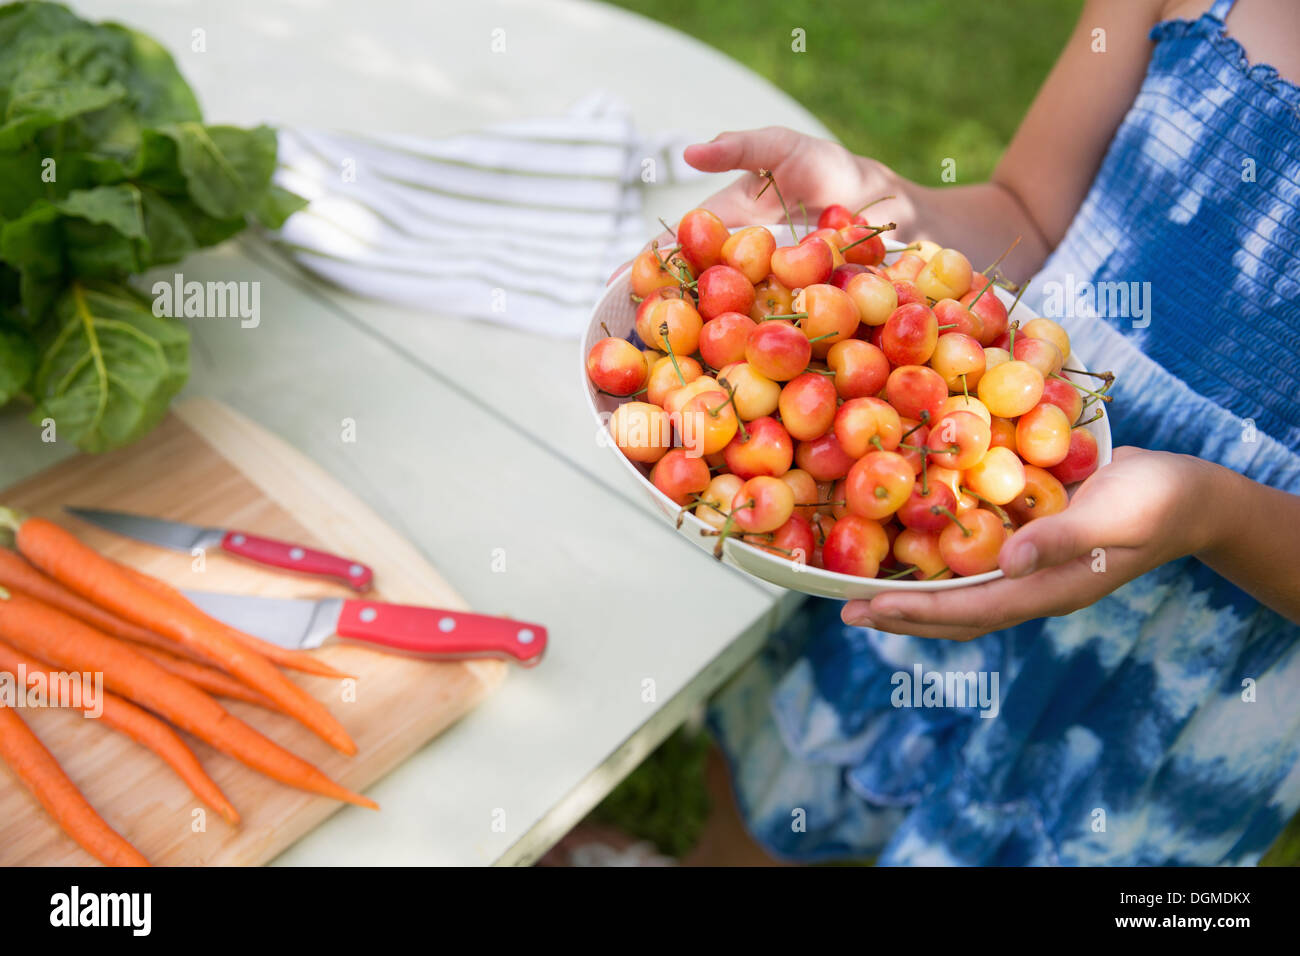 Family party. A child carrying a bowl of fresh picked cherries to a buffet table. - Stock Image